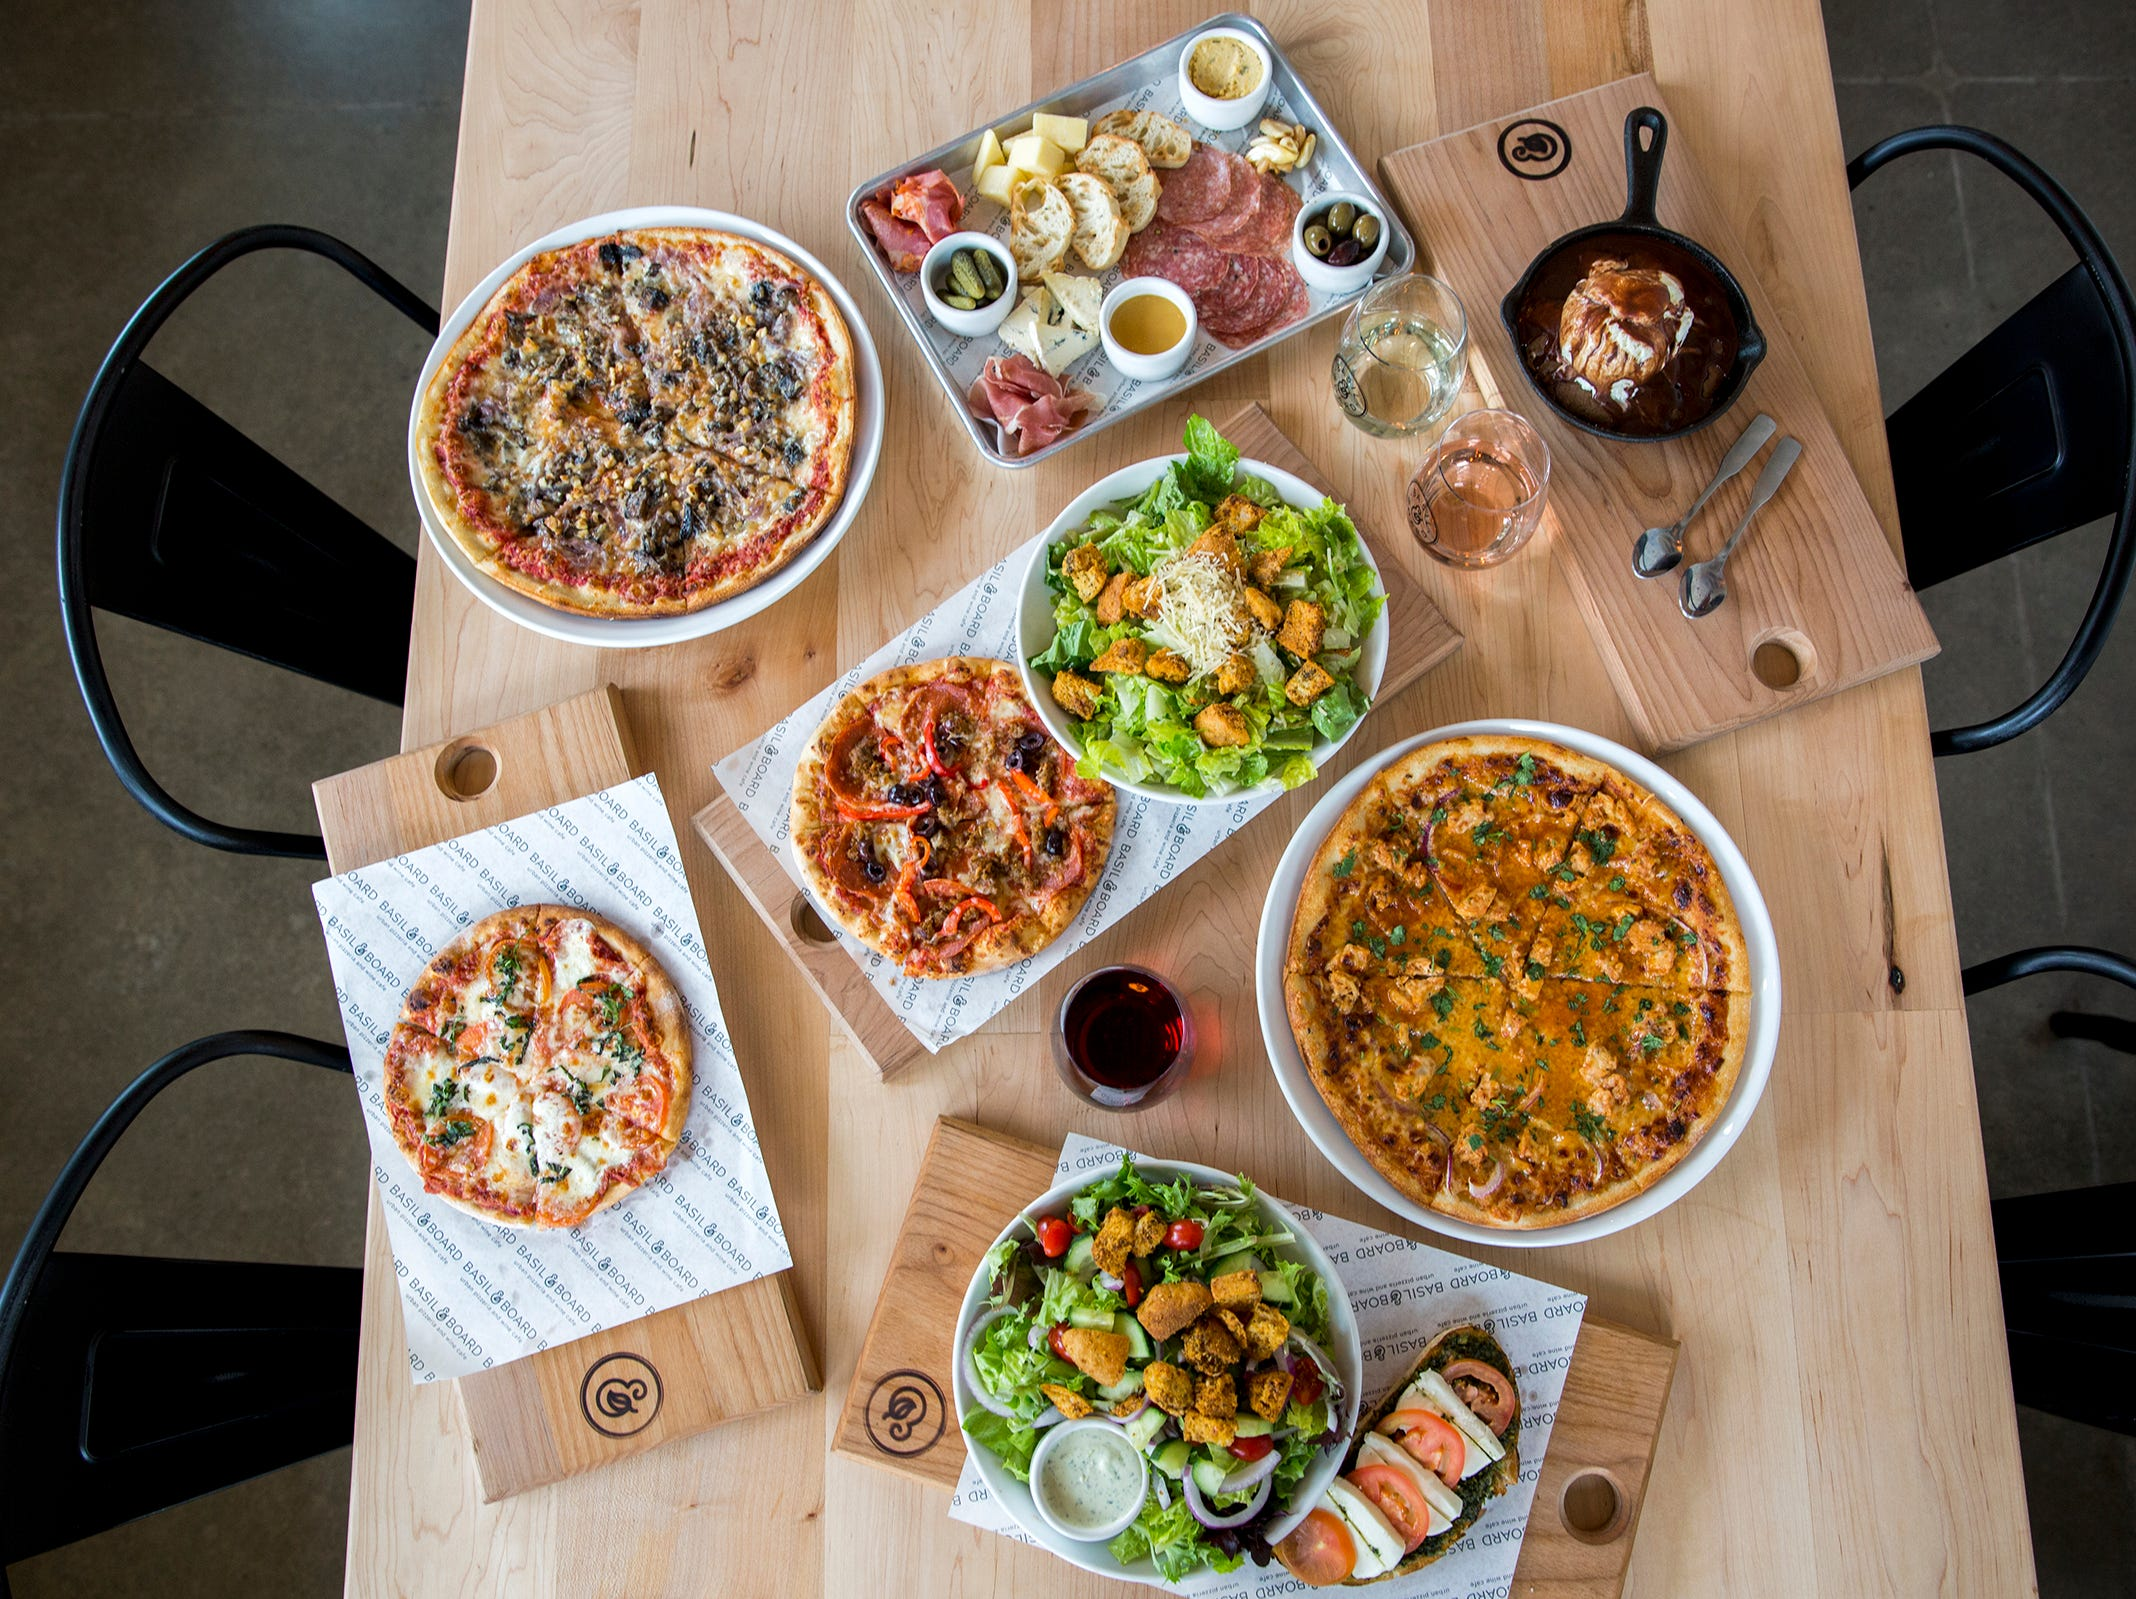 Pizzas, snacks, salads and dessert from the new lunch menu at Basil & Board in Salem on Tuesday, Feb. 26, 2019.